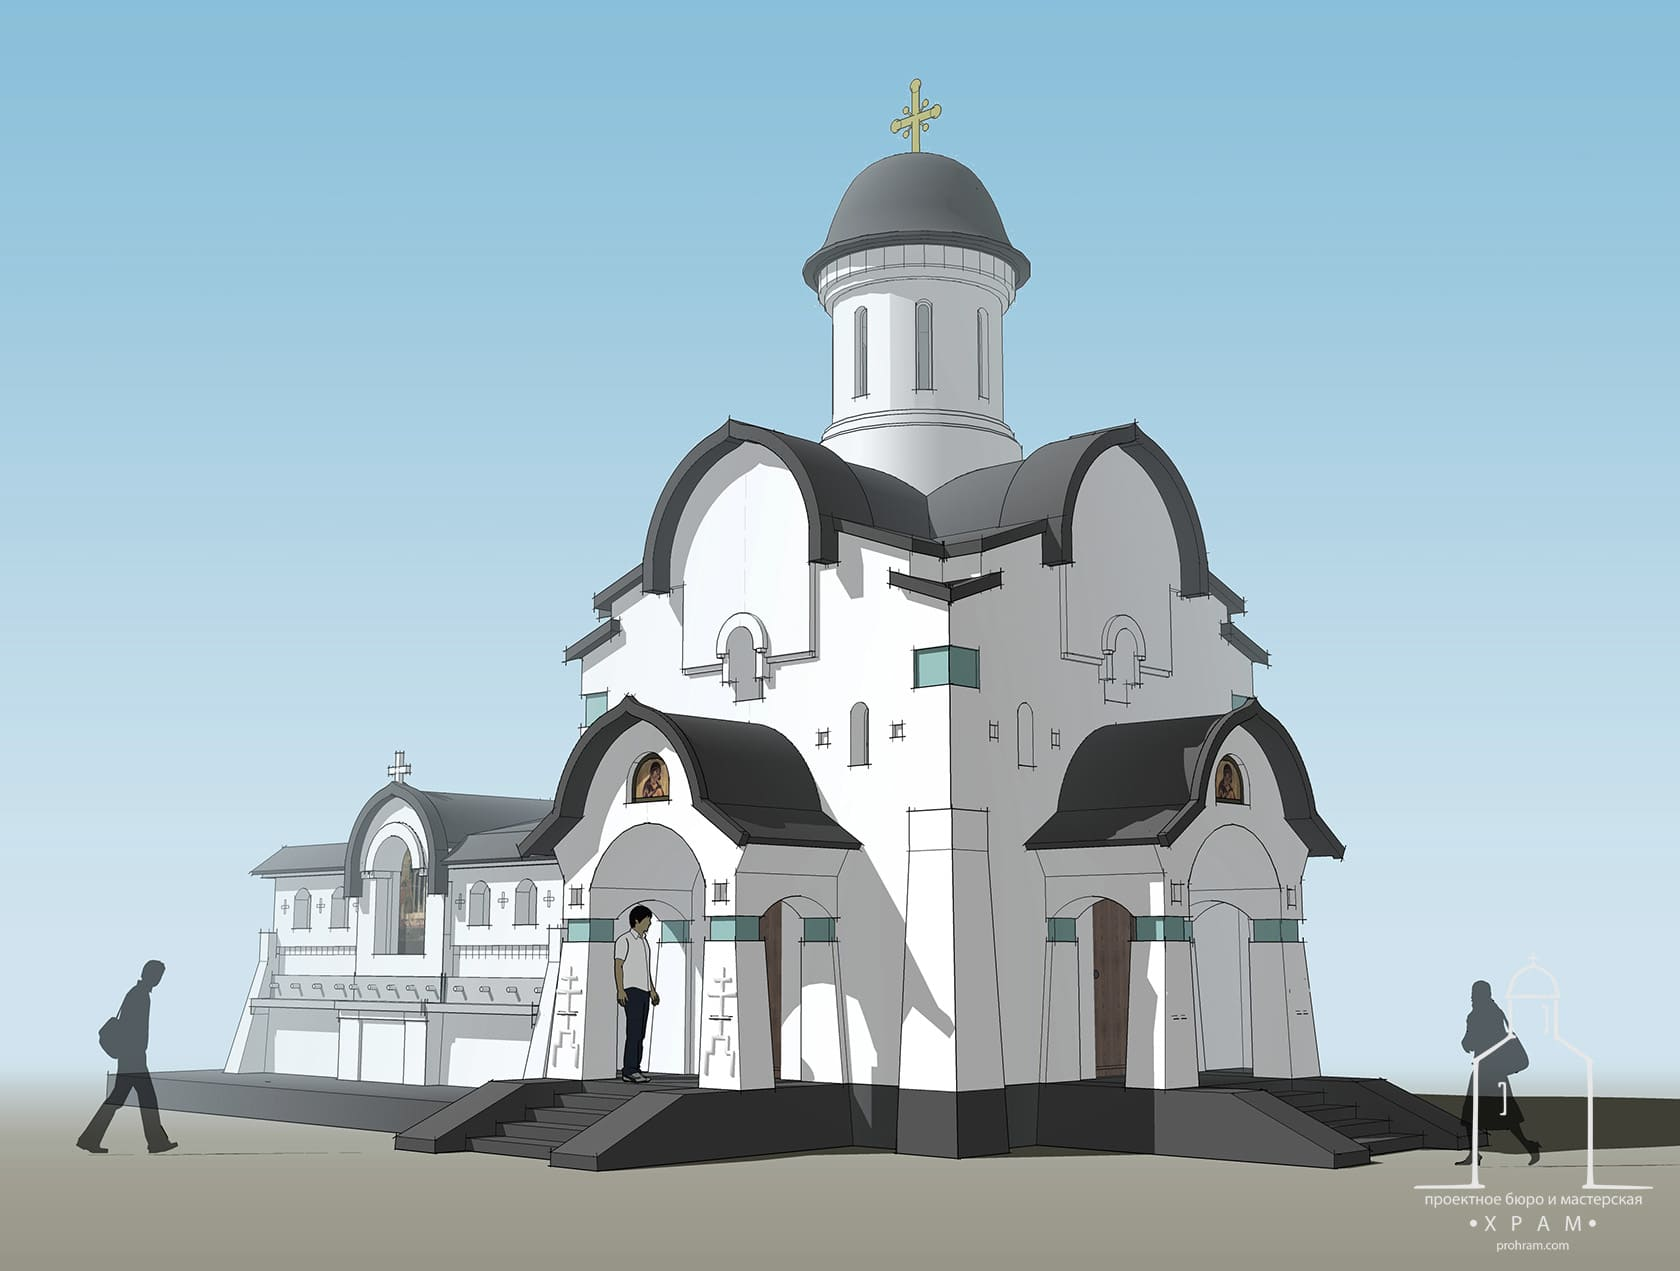 Chapel for the Blessing of Water, chapel project, sacred architecture, church proiect, orthodox church project